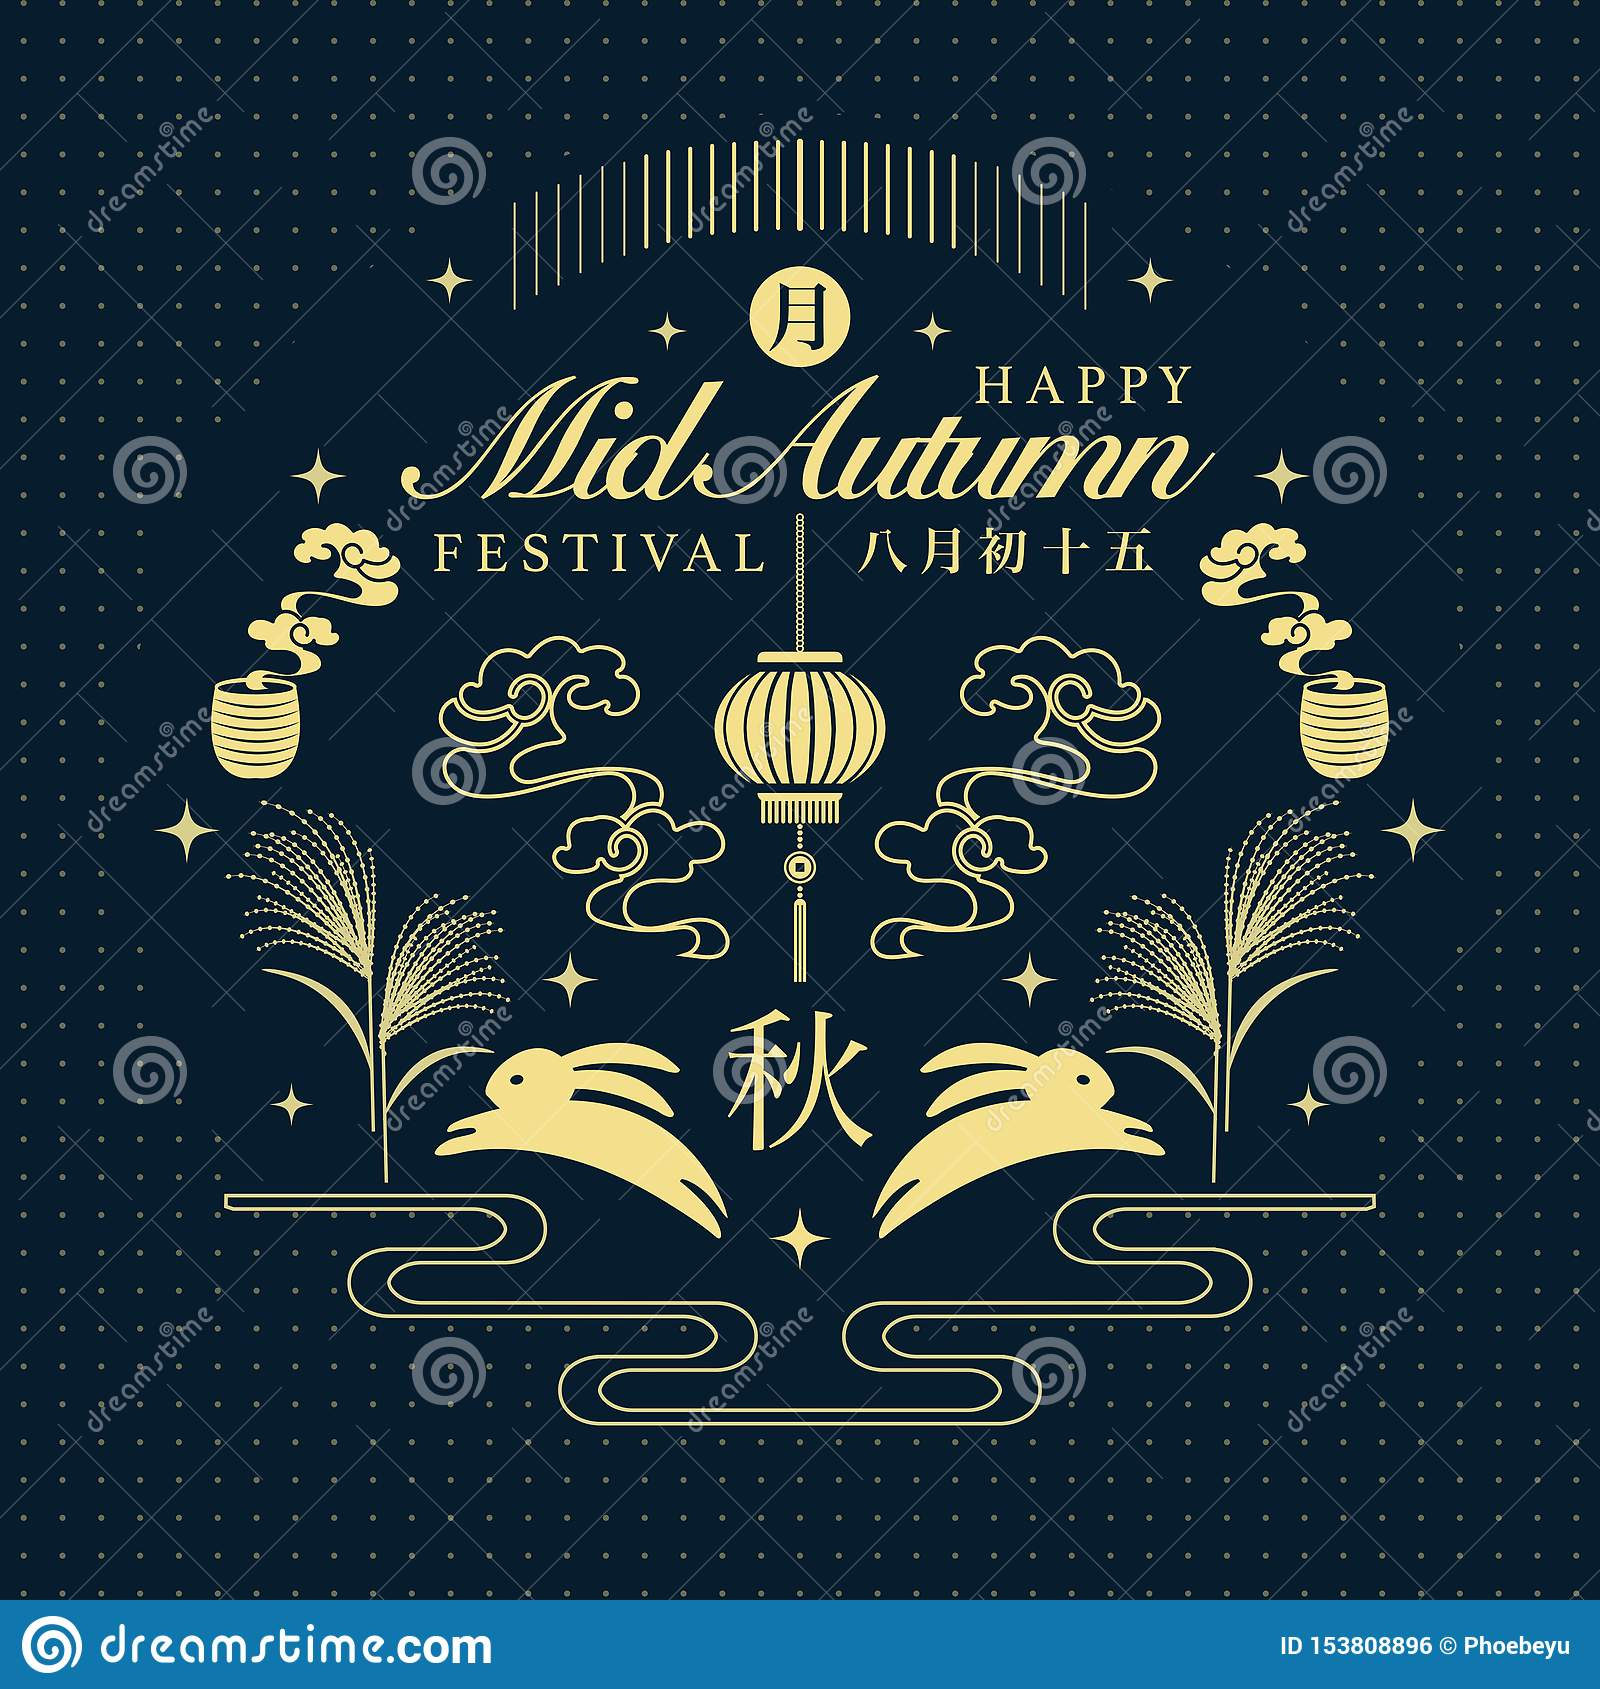 Retro Style Chinese Mid Autumn Festival Full Moon Spiral Cloud Star Lantern Silver Grass And Cute Rabbit Translation For Chinese Stock Vector Illustration Of Elegant Plant 153808896